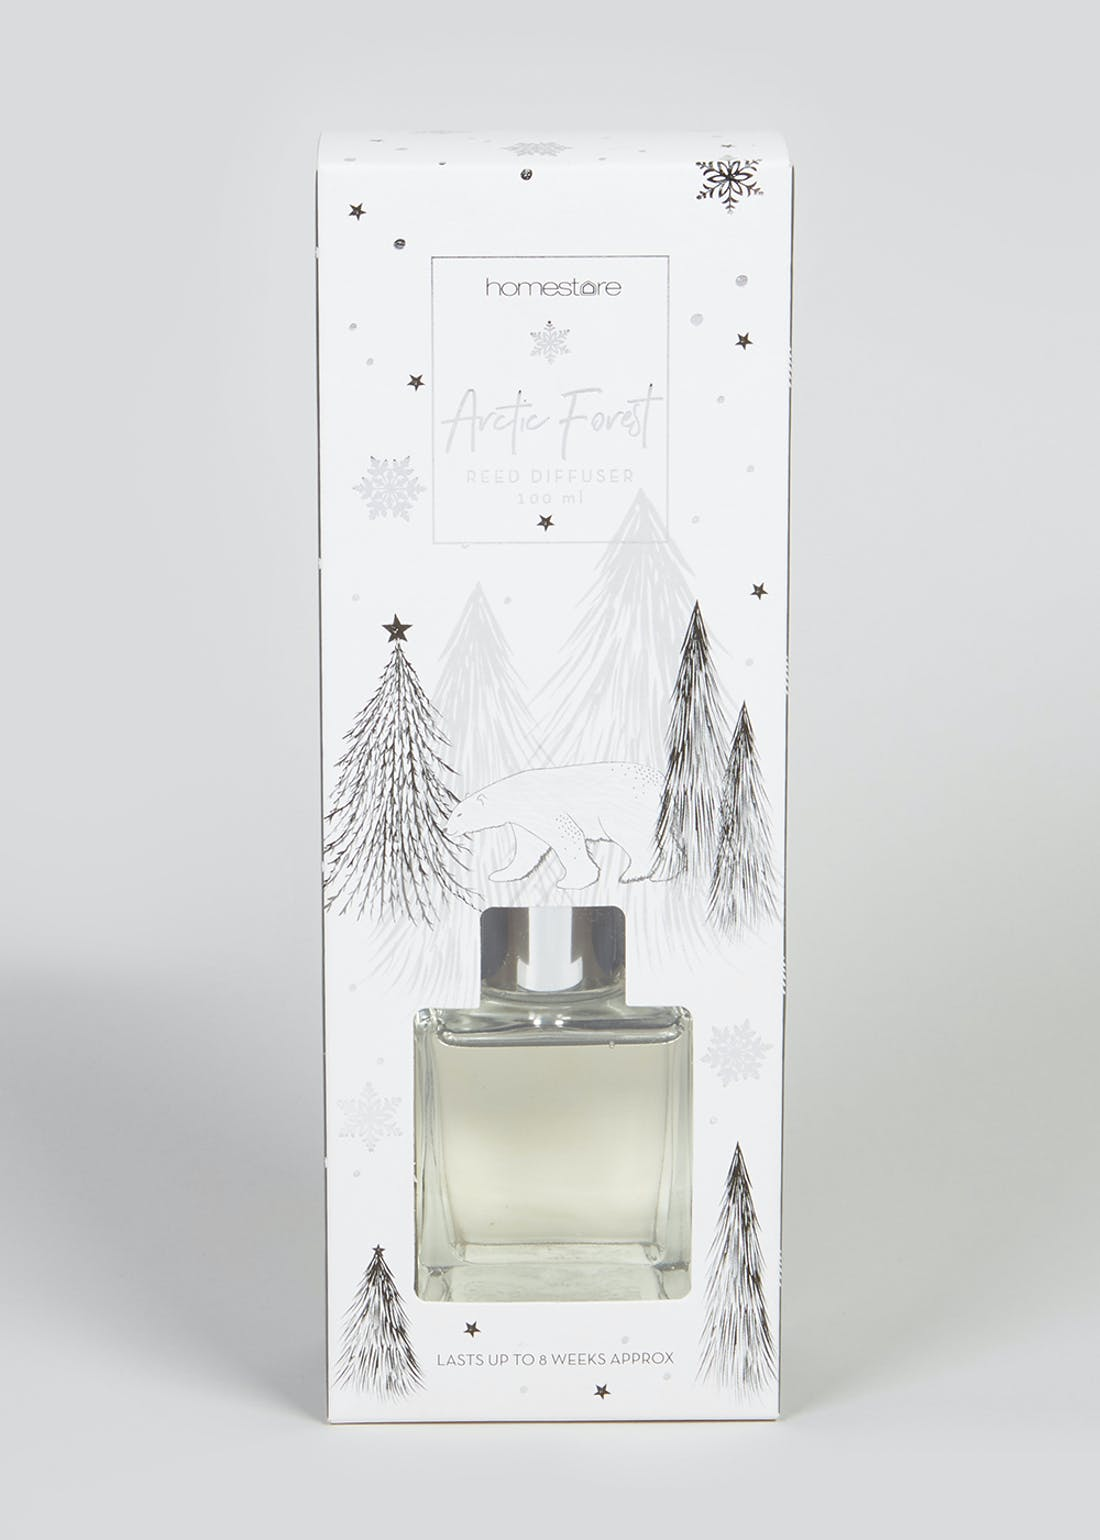 Arctic Forest Reed Diffuser (100ml)